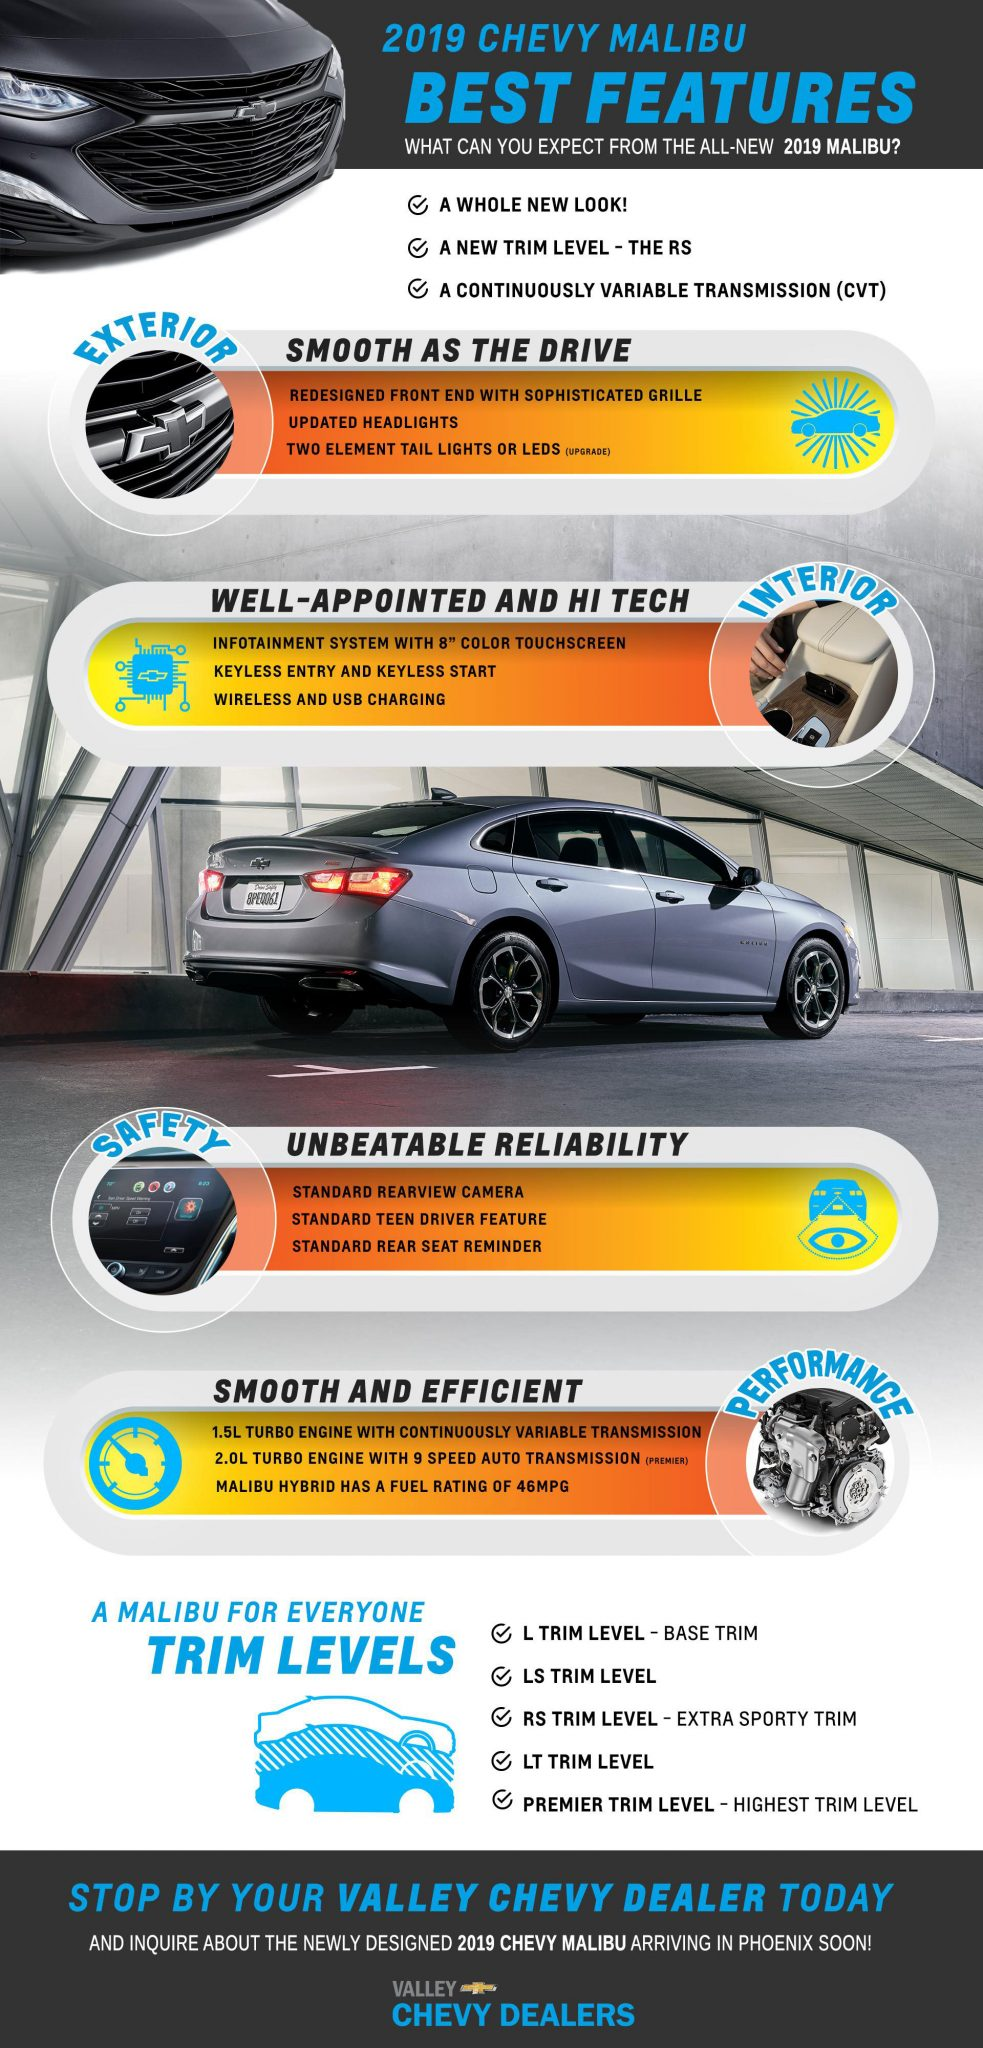 2019 Chevrolet Malibu Interior Exterior Safety Features Valley